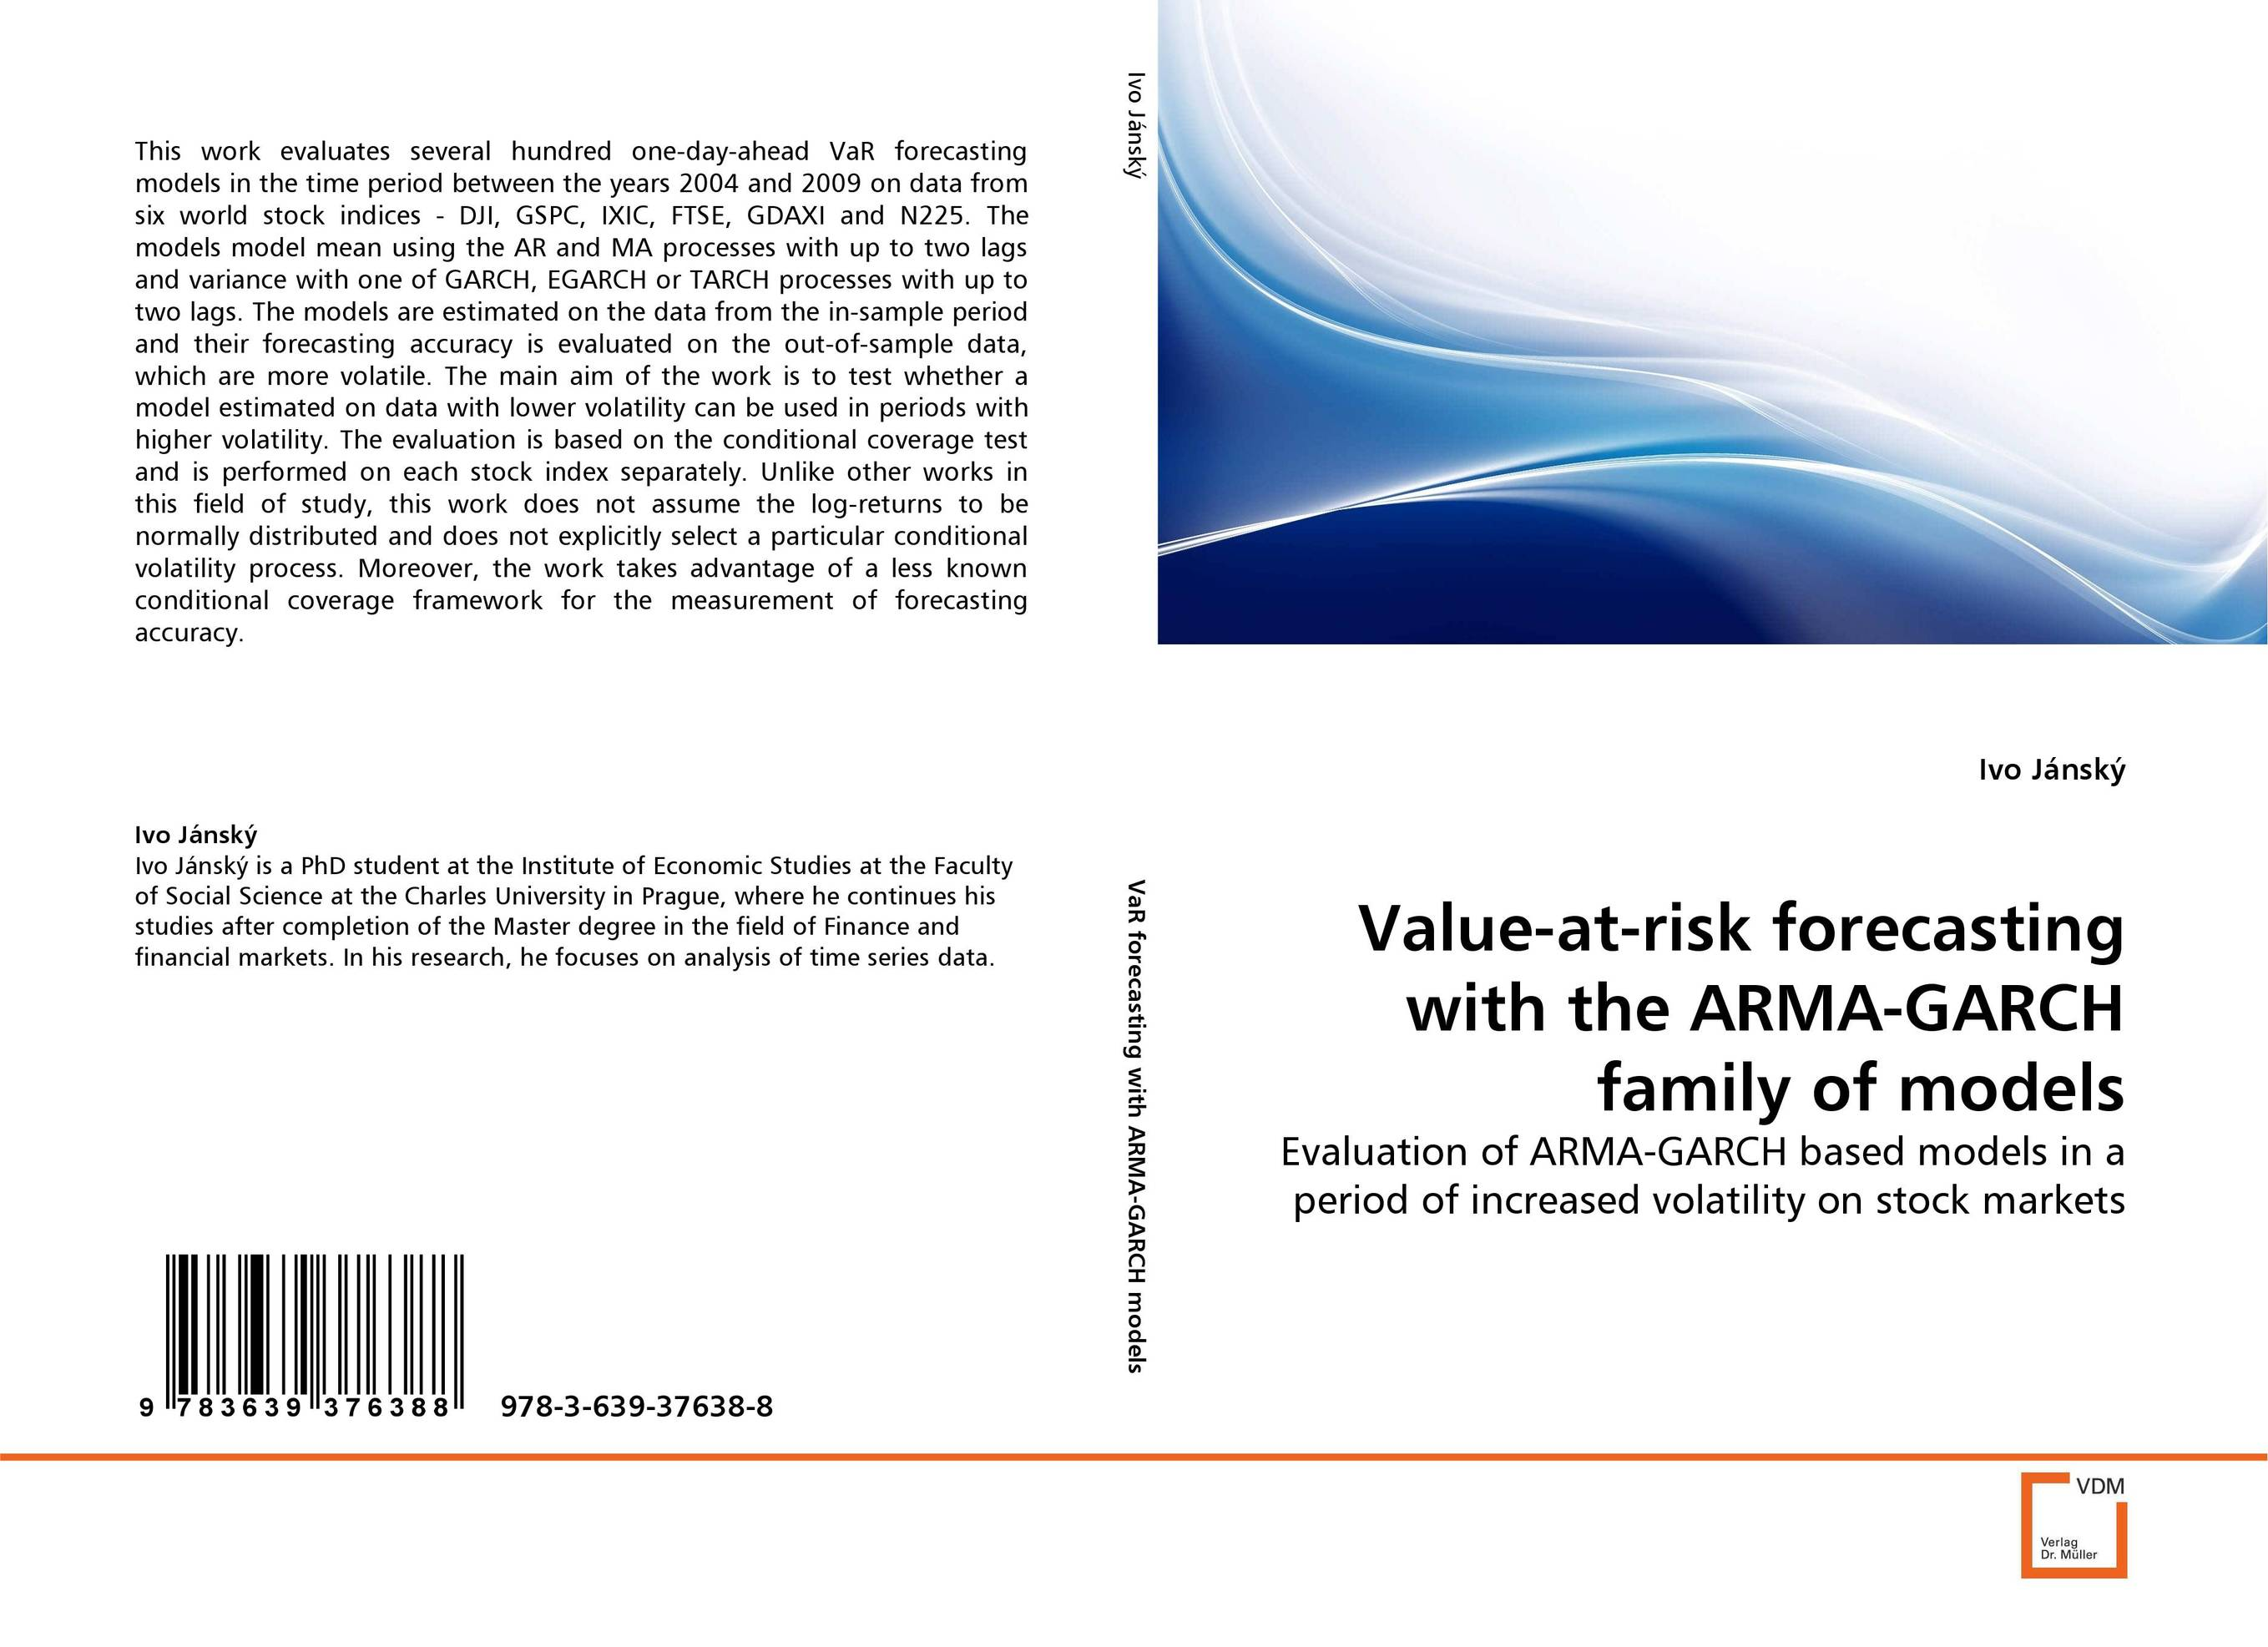 Value-at-risk forecasting with the ARMA-GARCH family of models charles chase w demand driven forecasting a structured approach to forecasting